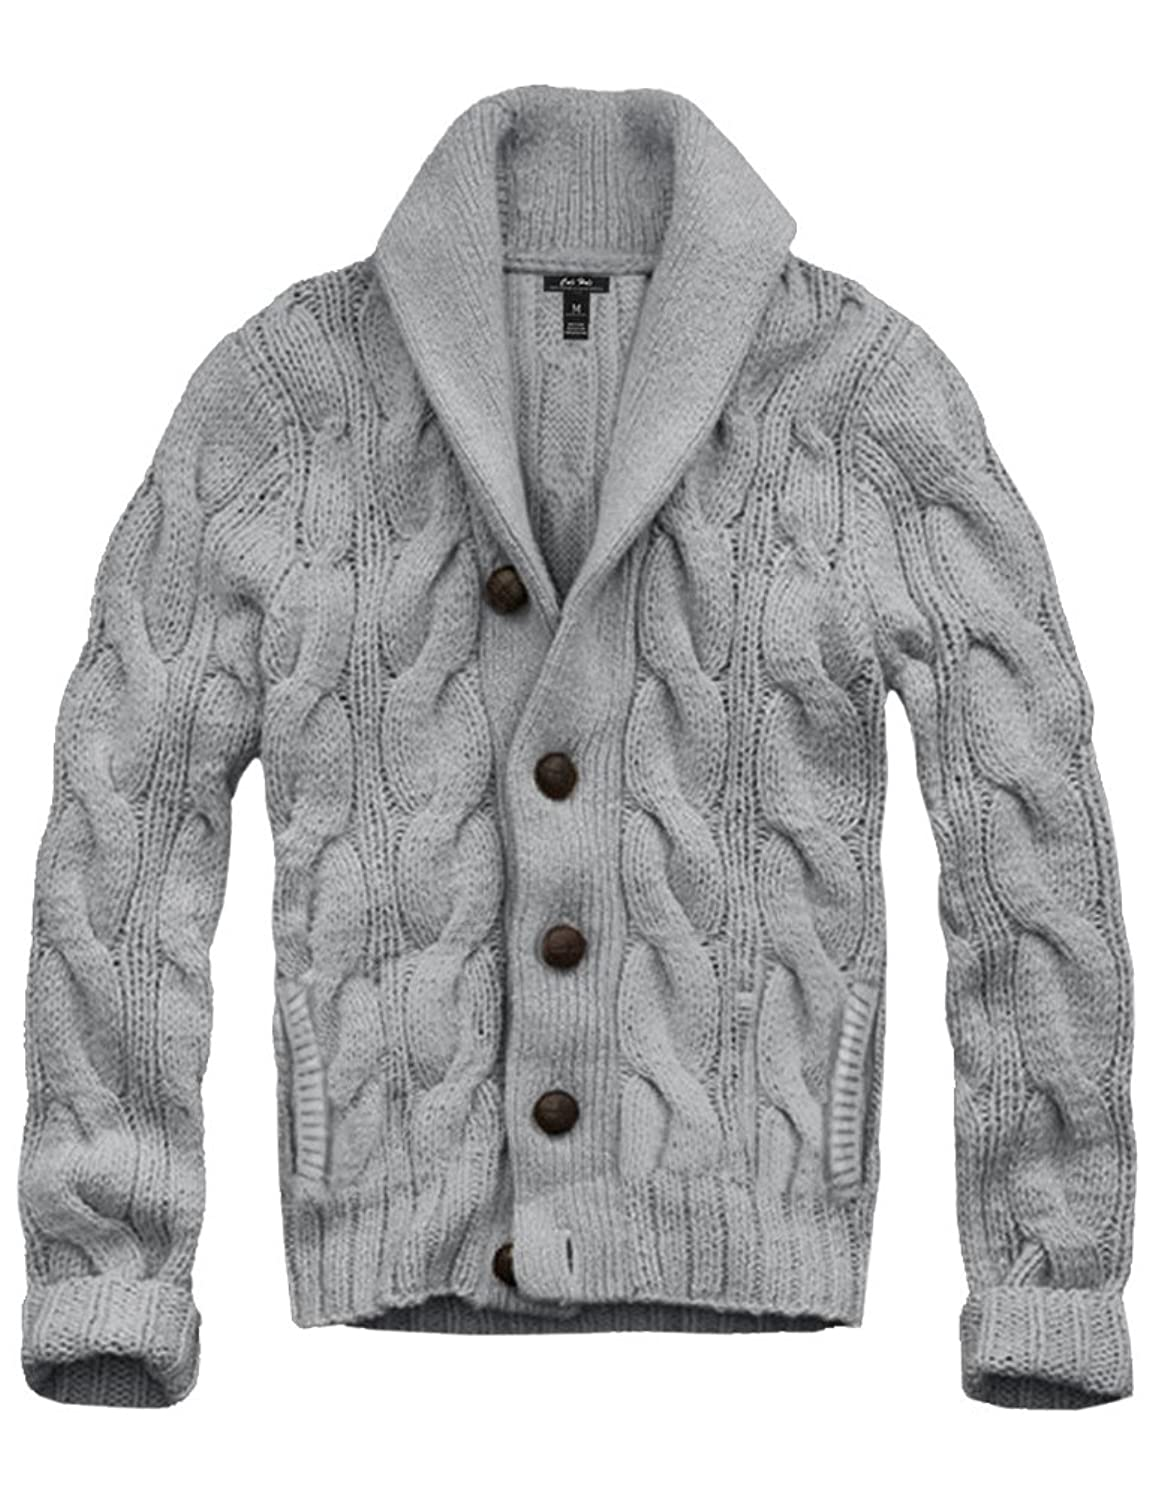 Mens Cali Holi Cable Knit Shawl Collar Cardigan Style Sweater Grey ...